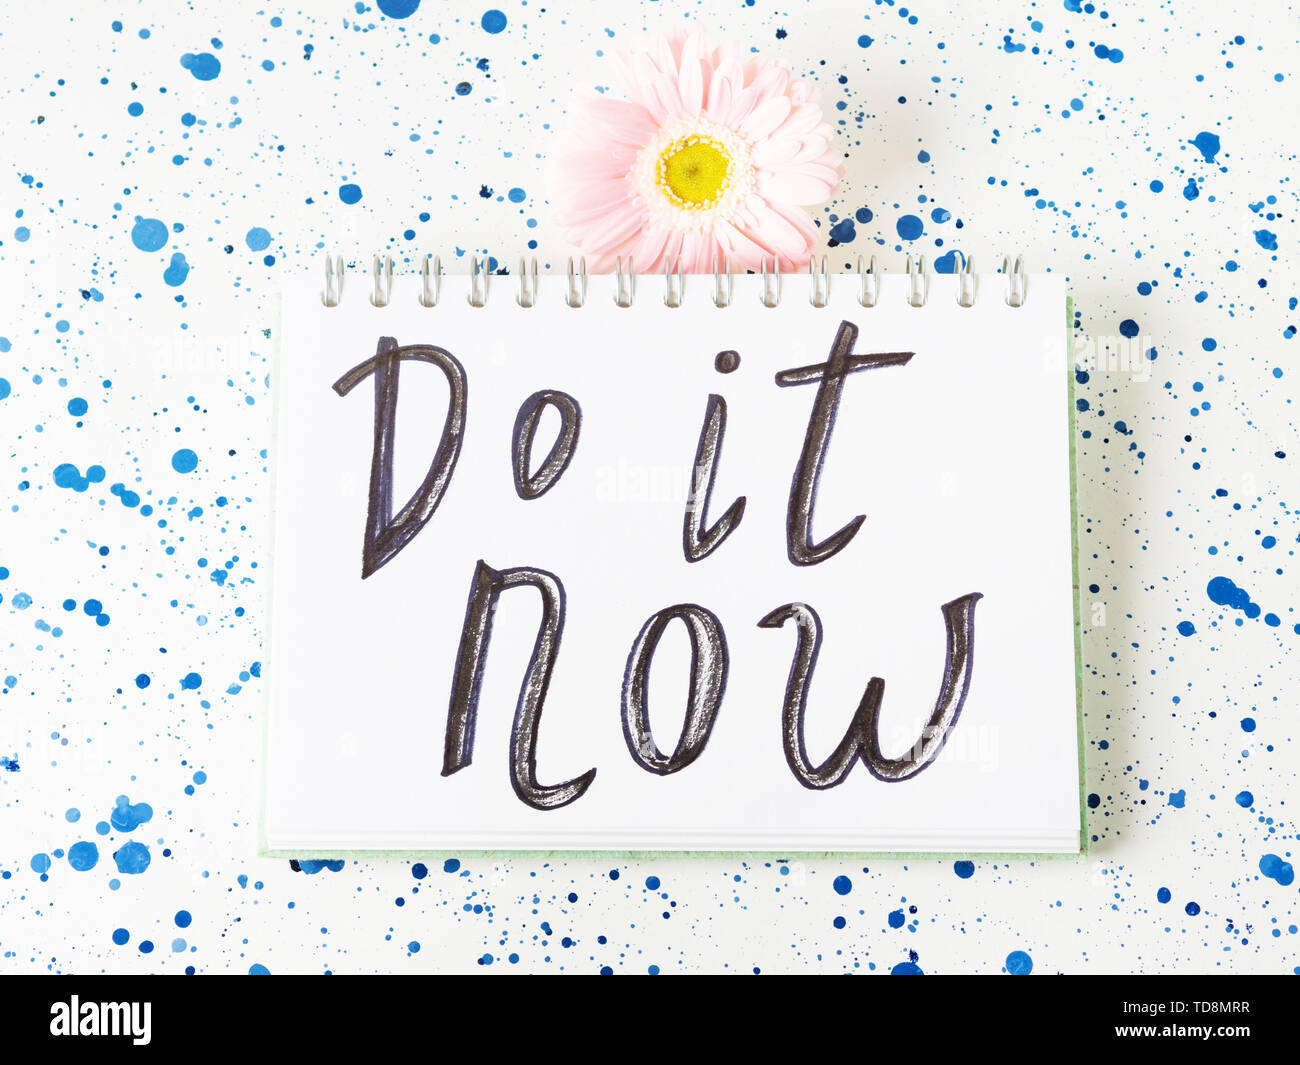 Do it now inspirational quote. Self motivation concept. Call to action. - Stock Image